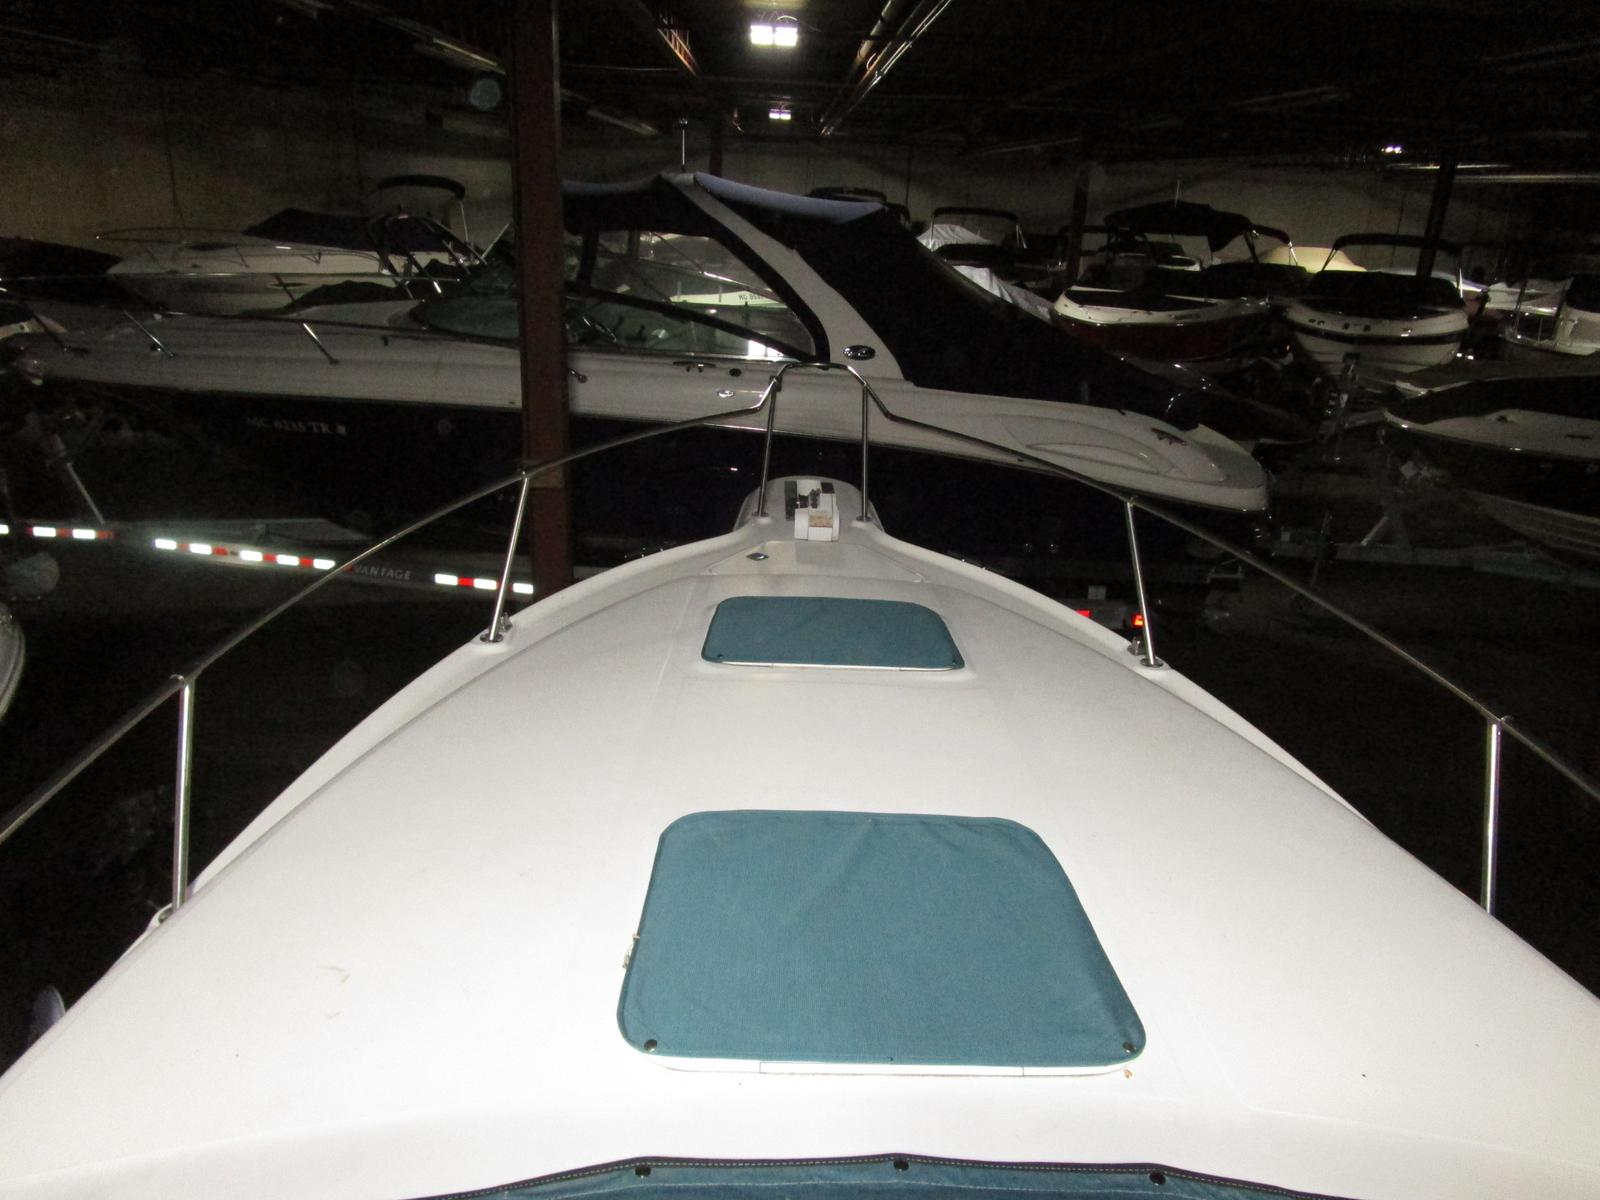 1994 Sea Ray boat for sale, model of the boat is 270 Sundancer & Image # 2 of 11